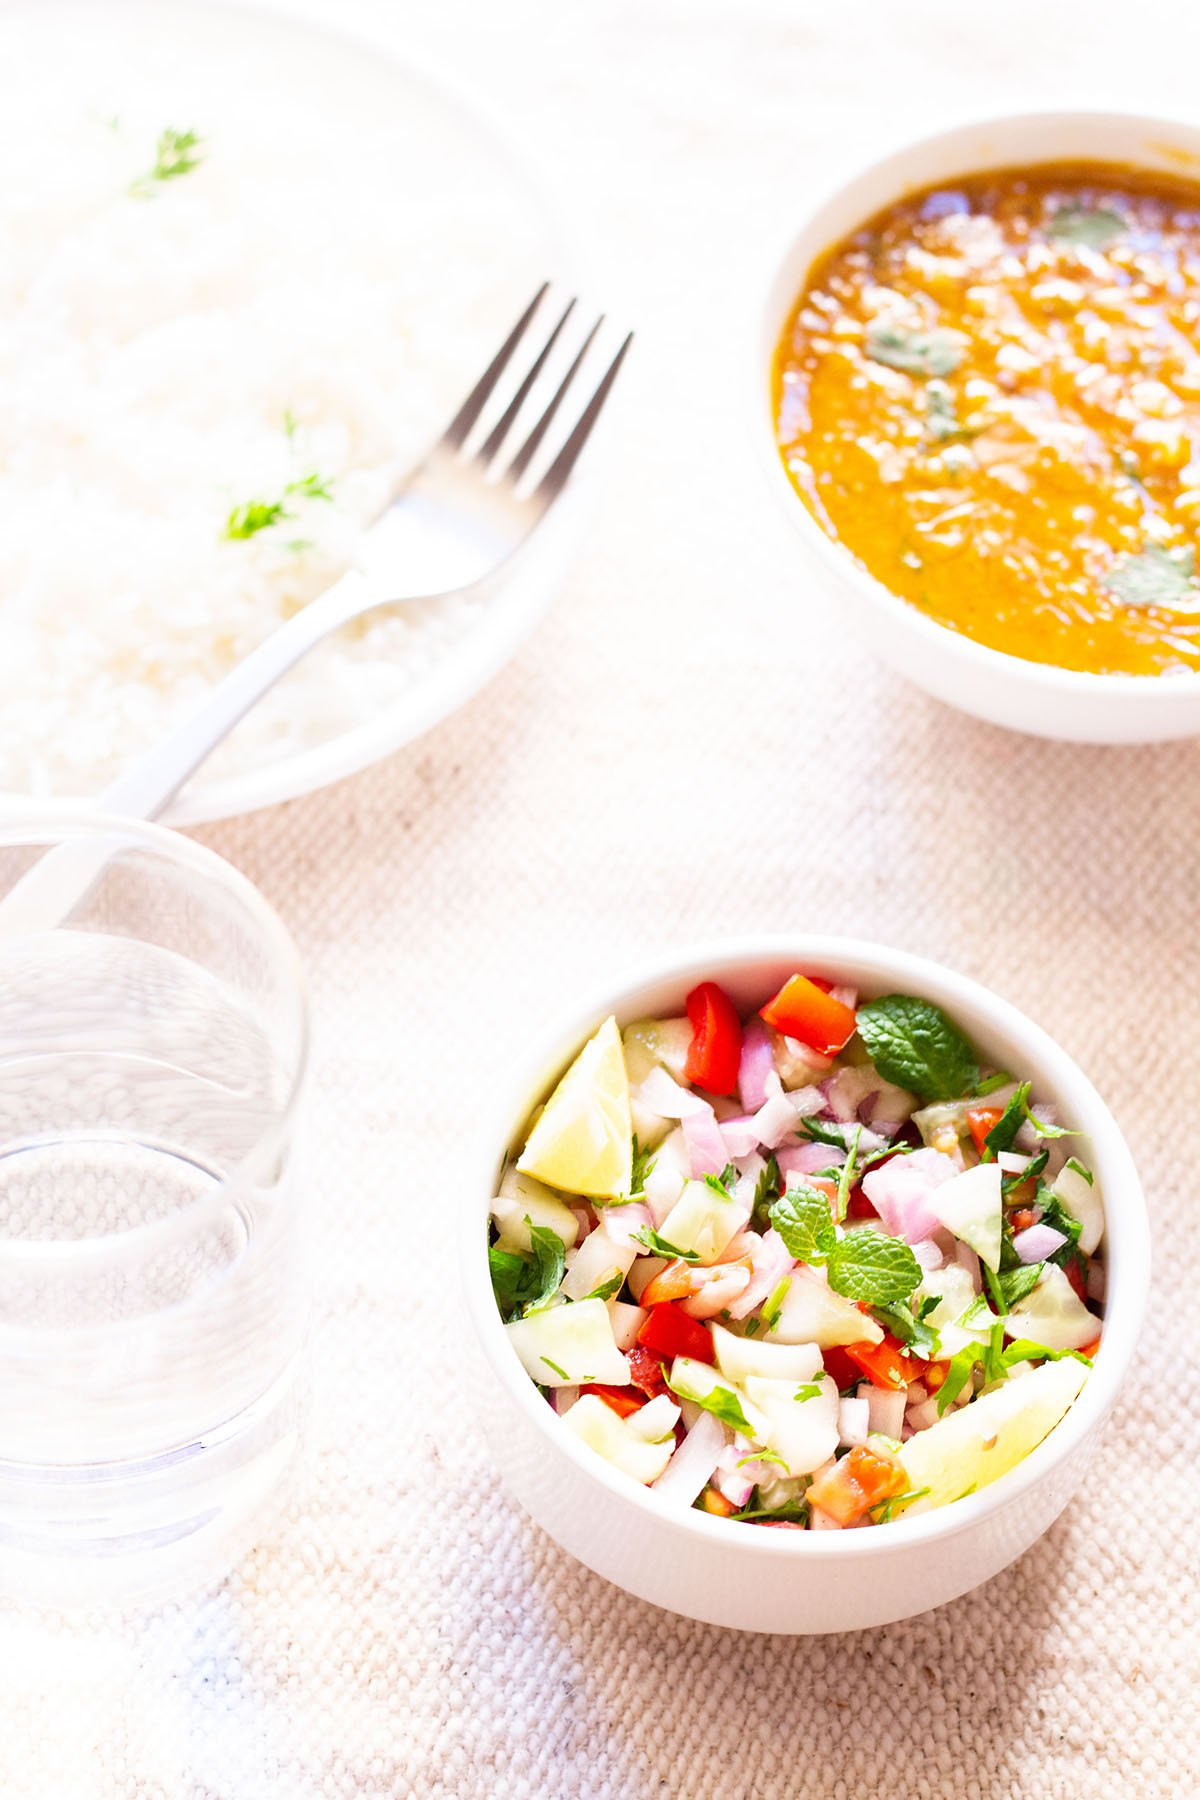 kachumber salad in a small white bowl on a table next to bowls of rice and curry